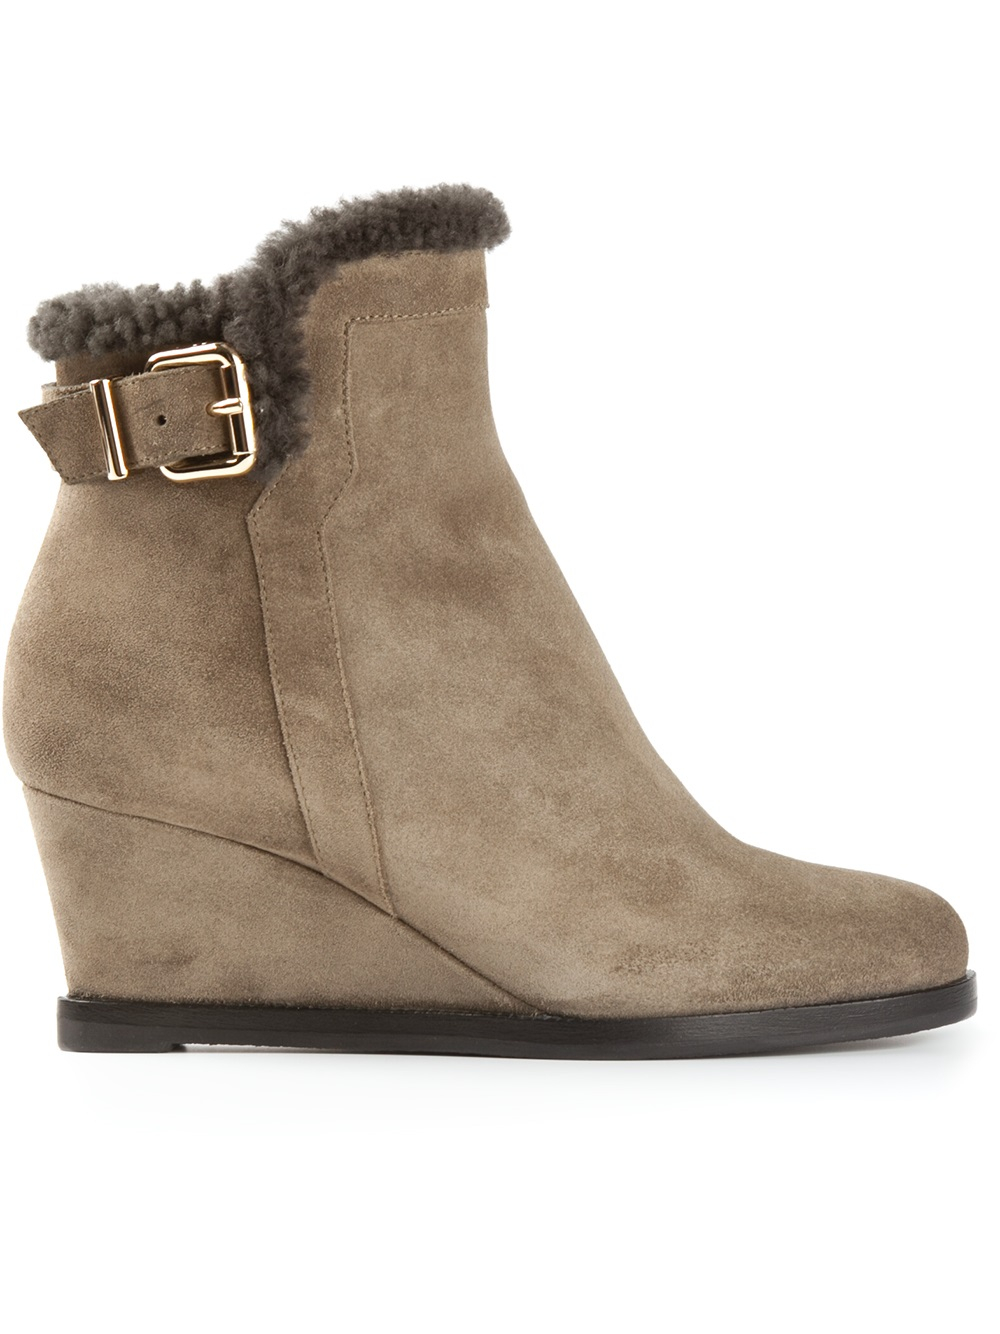 fendi wedge ankle boots in brown lyst